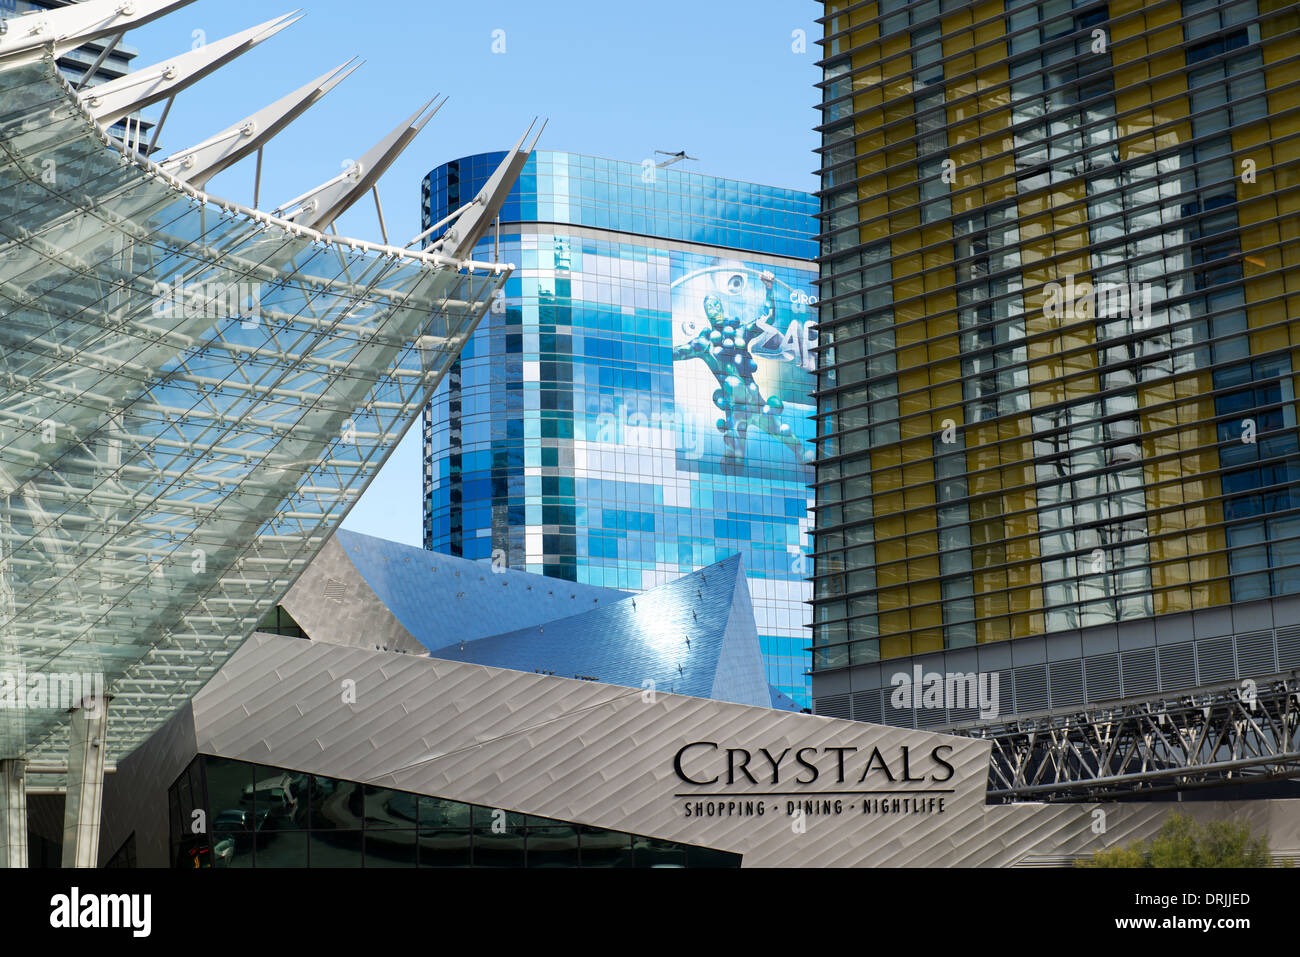 The Crystals Aria complex in Las Vegas. - Stock Image